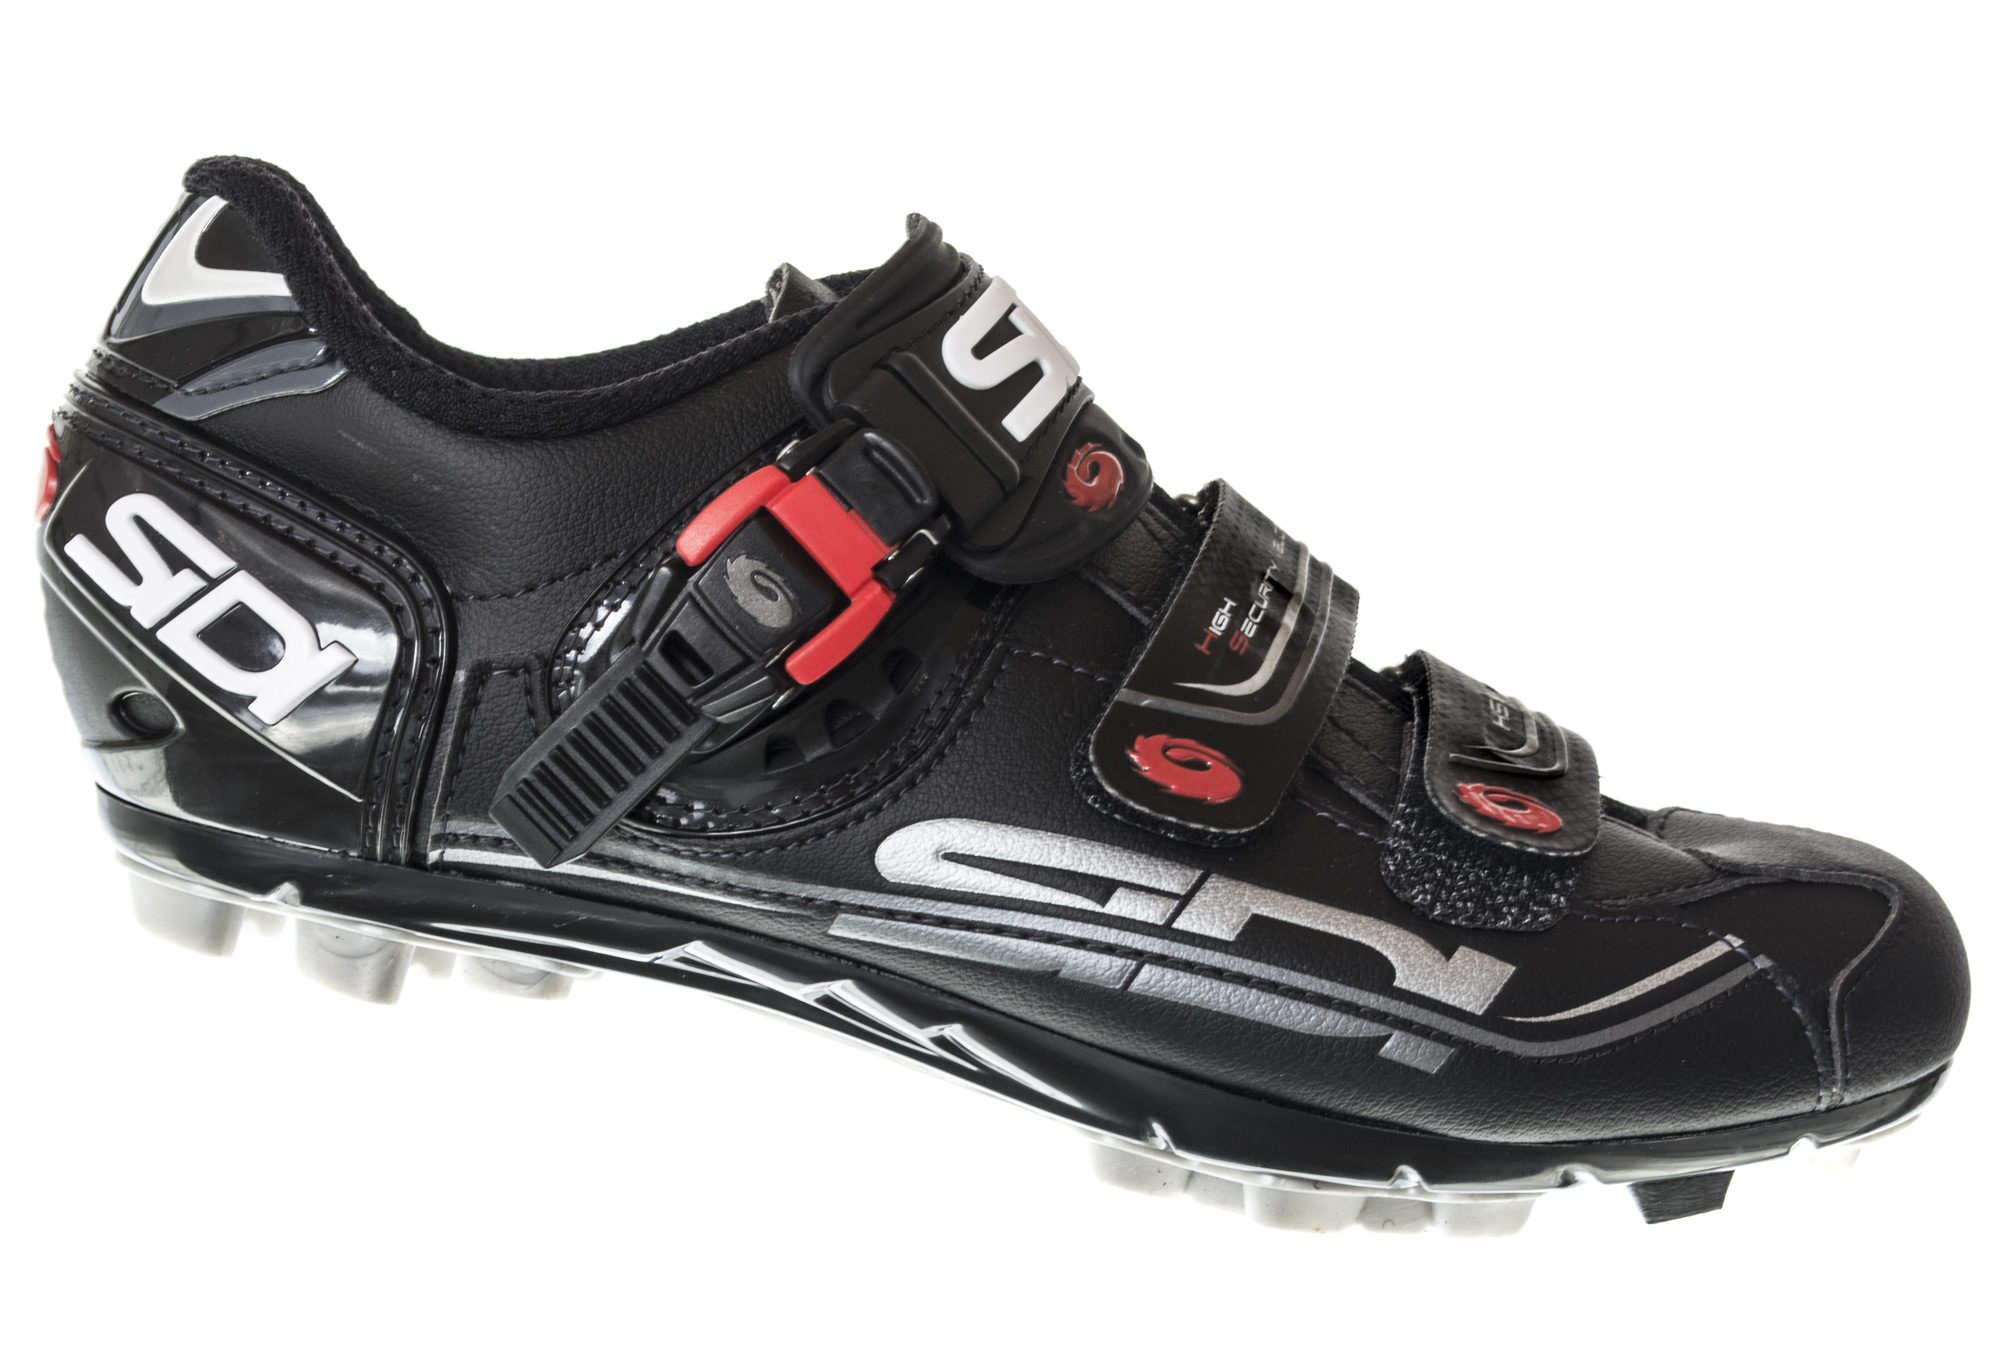 Sidi DOMINATOR 7 Cycling Shoes Noir 2017